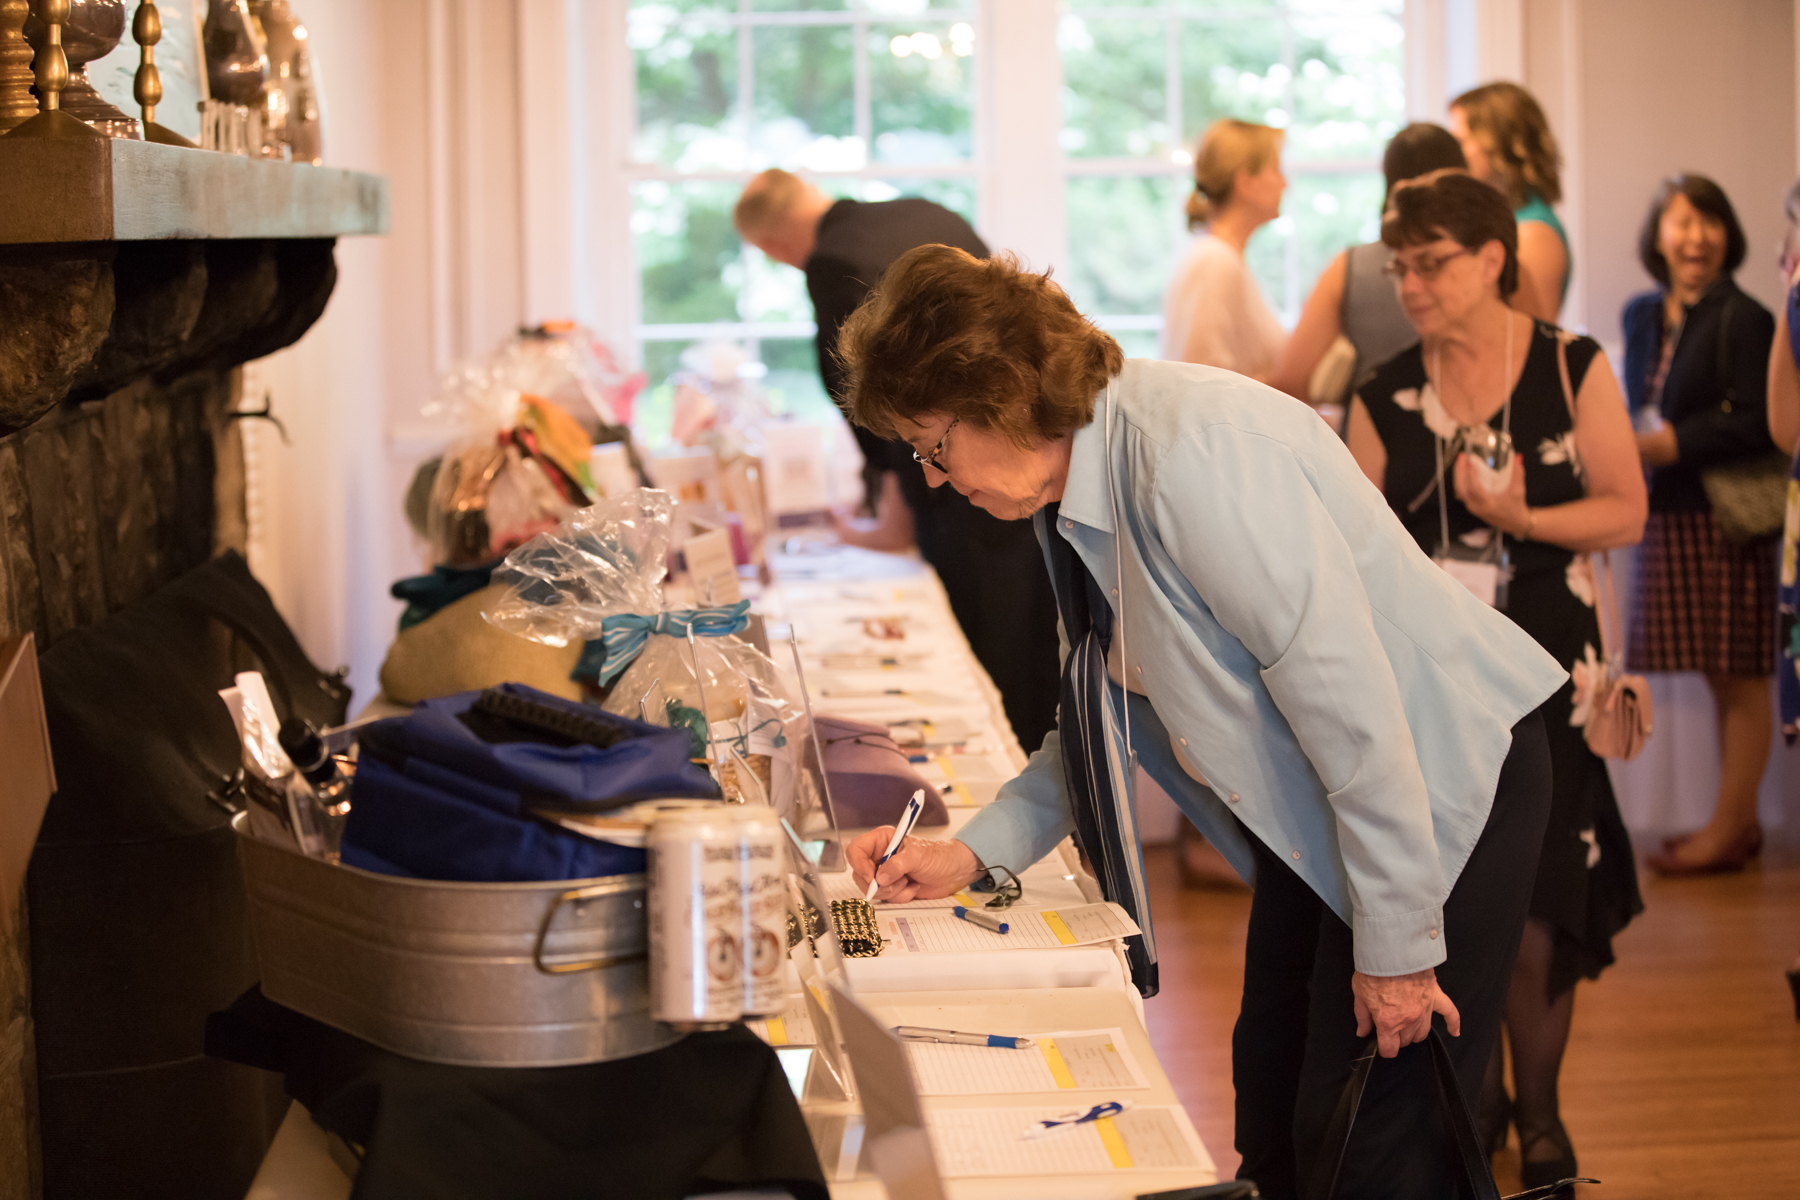 Guests had the opportunity to bid on more than 40 items in the silent auction.